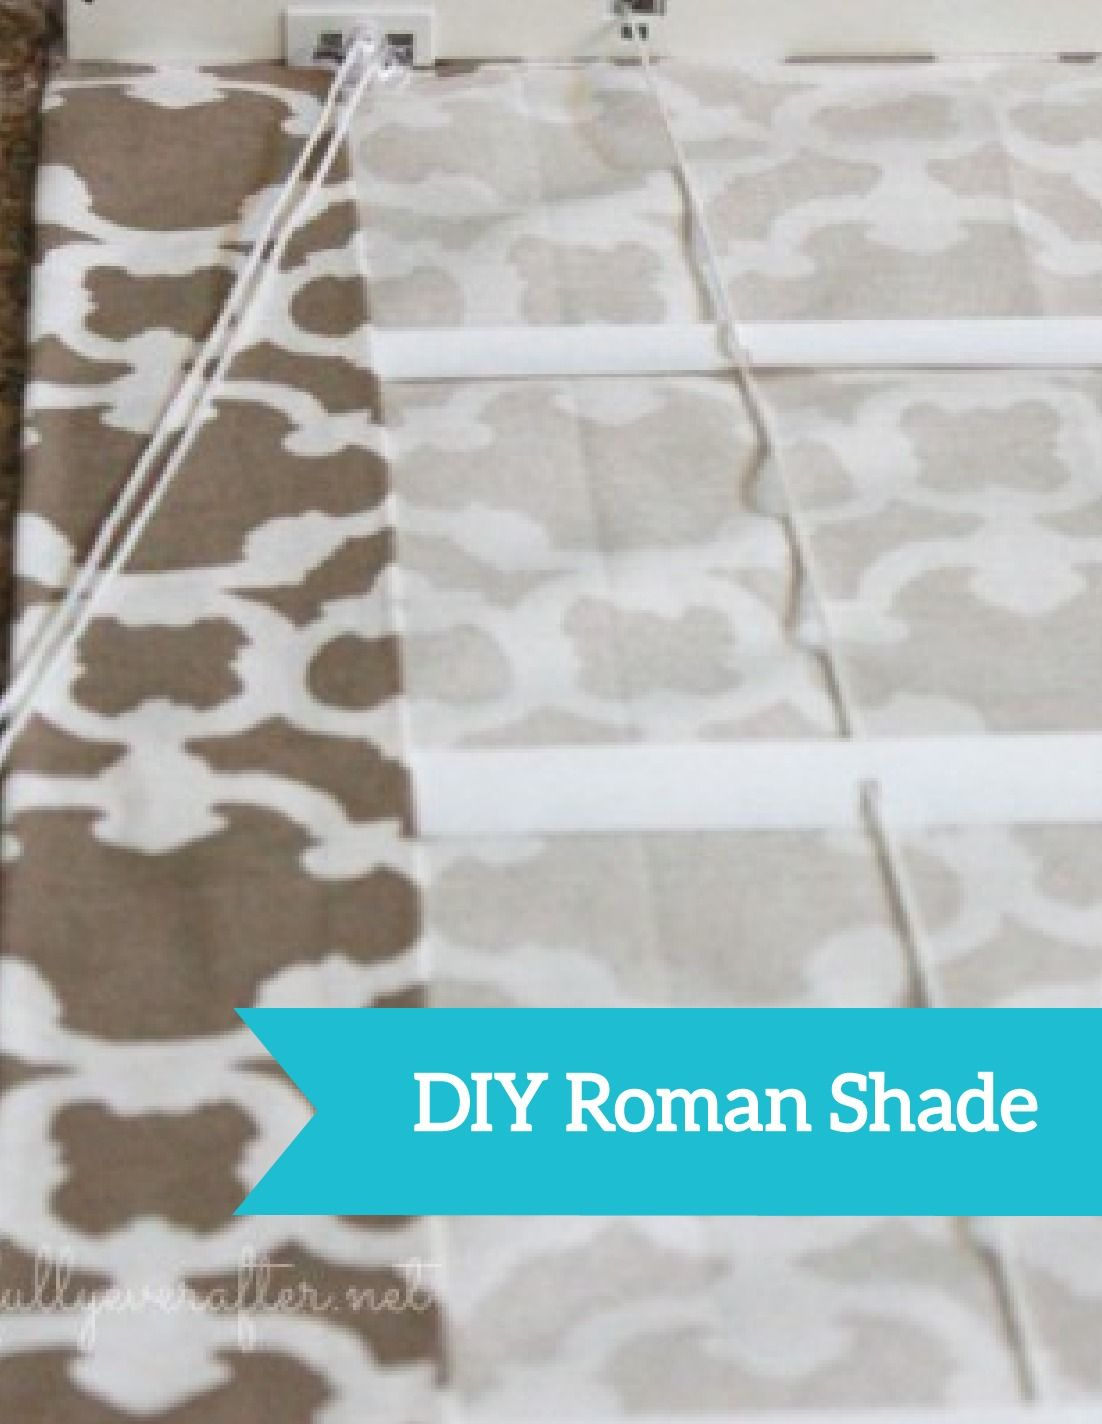 Diy Roman Shades Easy How To Make A Roman Shade Diy Pinterest Roman Shades Diy